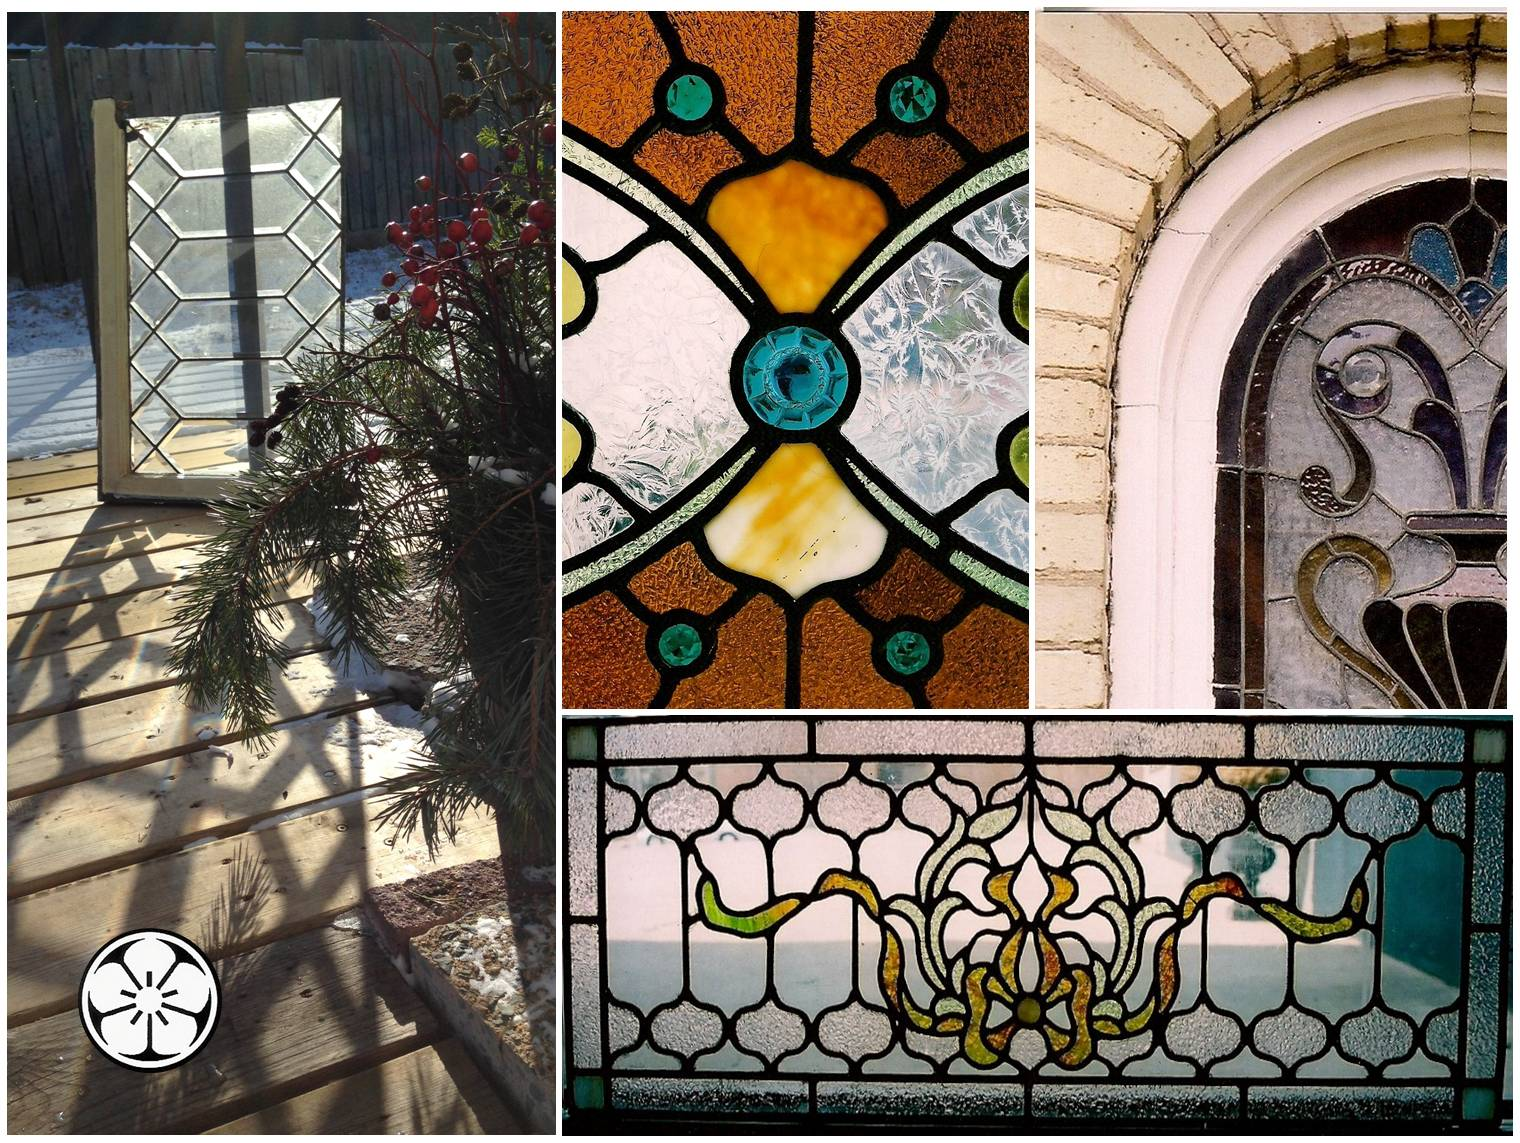 conservation – rose window stained glass